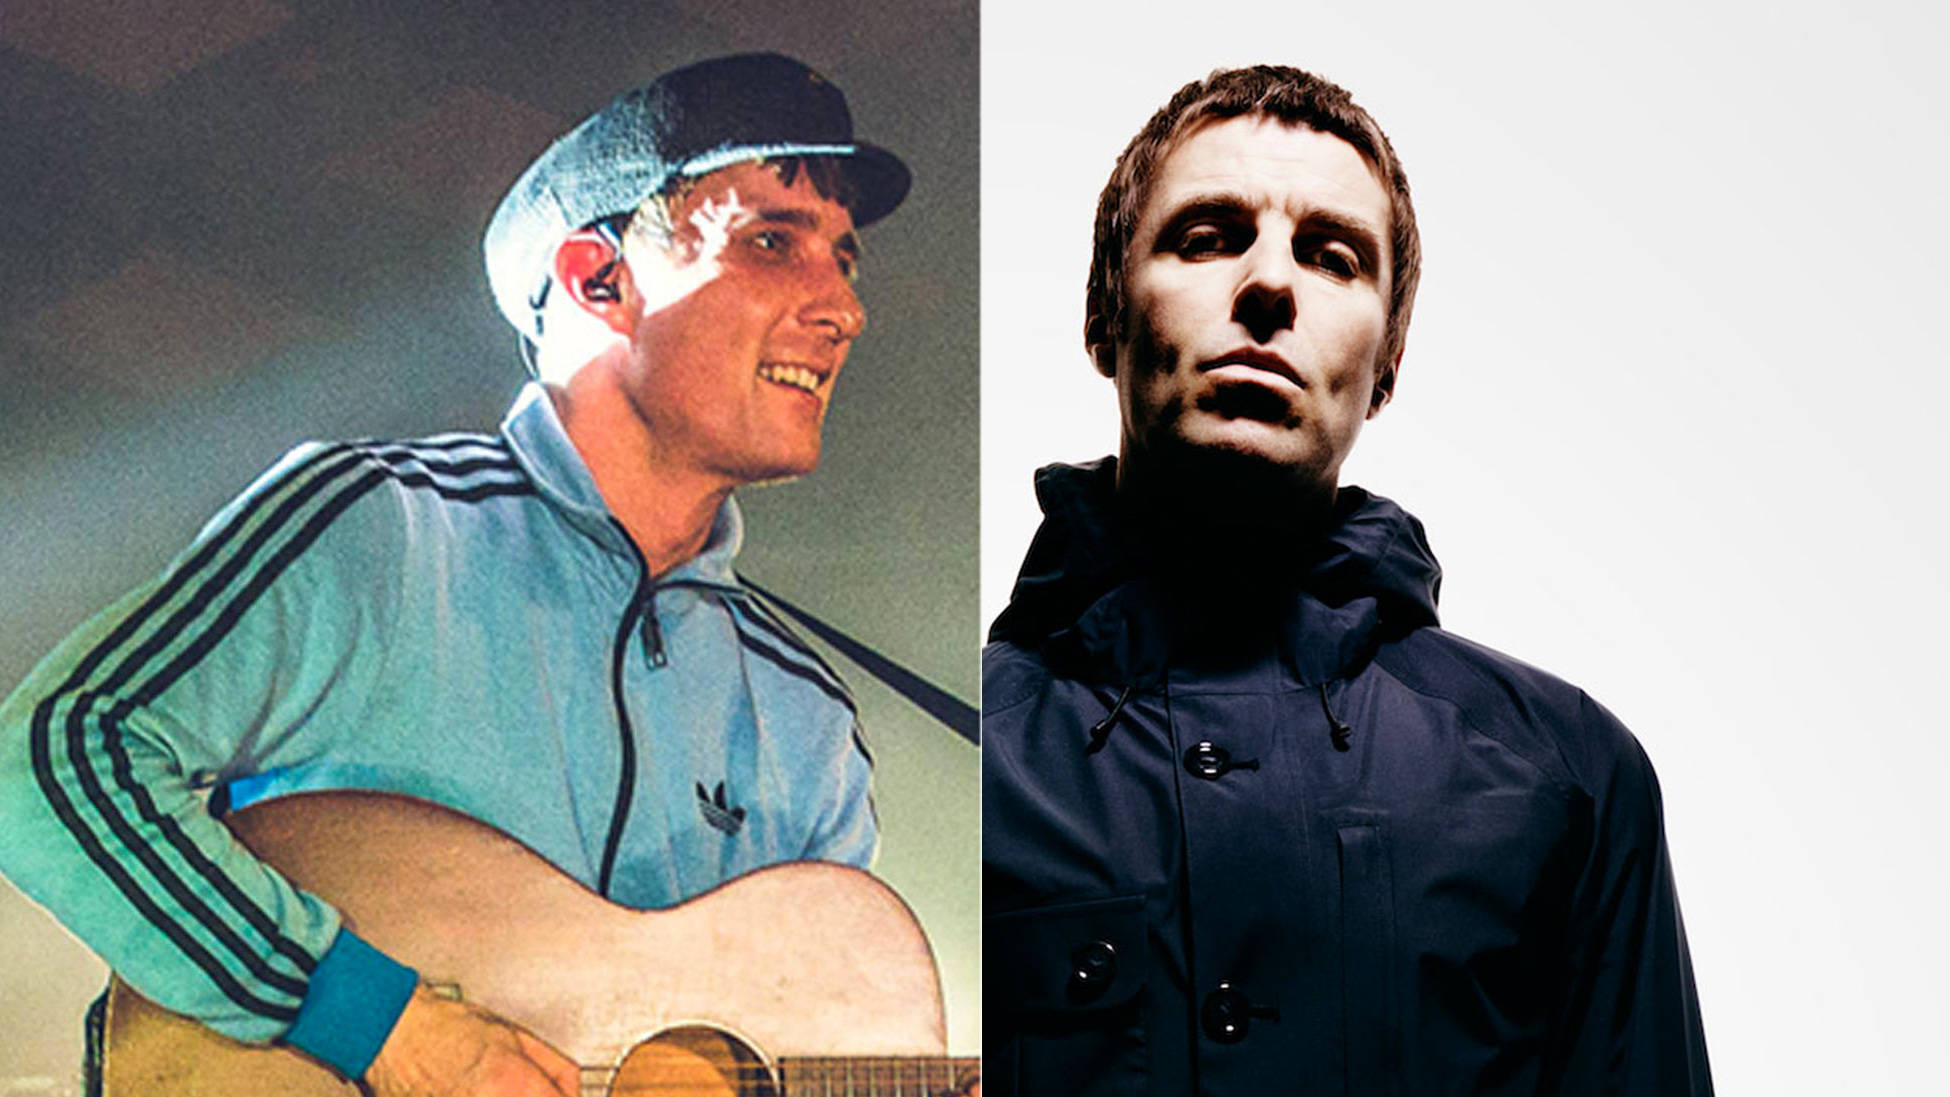 """Liam Gallagher praises """"top man"""" Gerry Cinnamon for doing """"supernatural"""" things"""